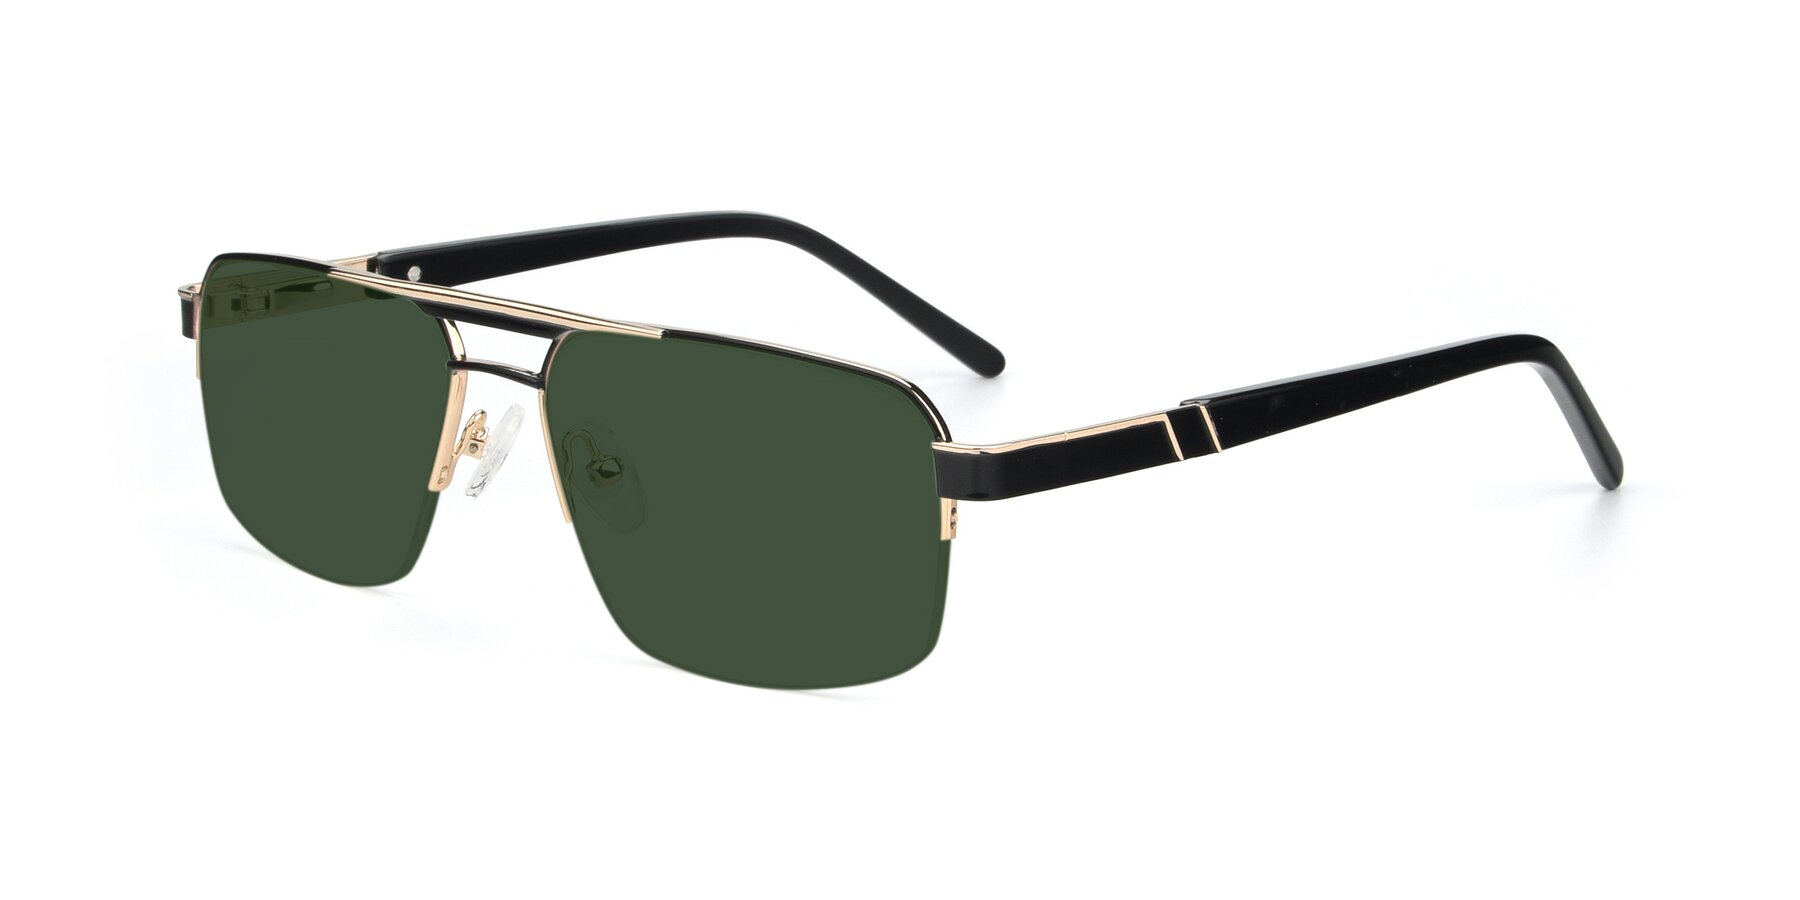 Angle of 19004 in Black-Gold with Green Tinted Lenses